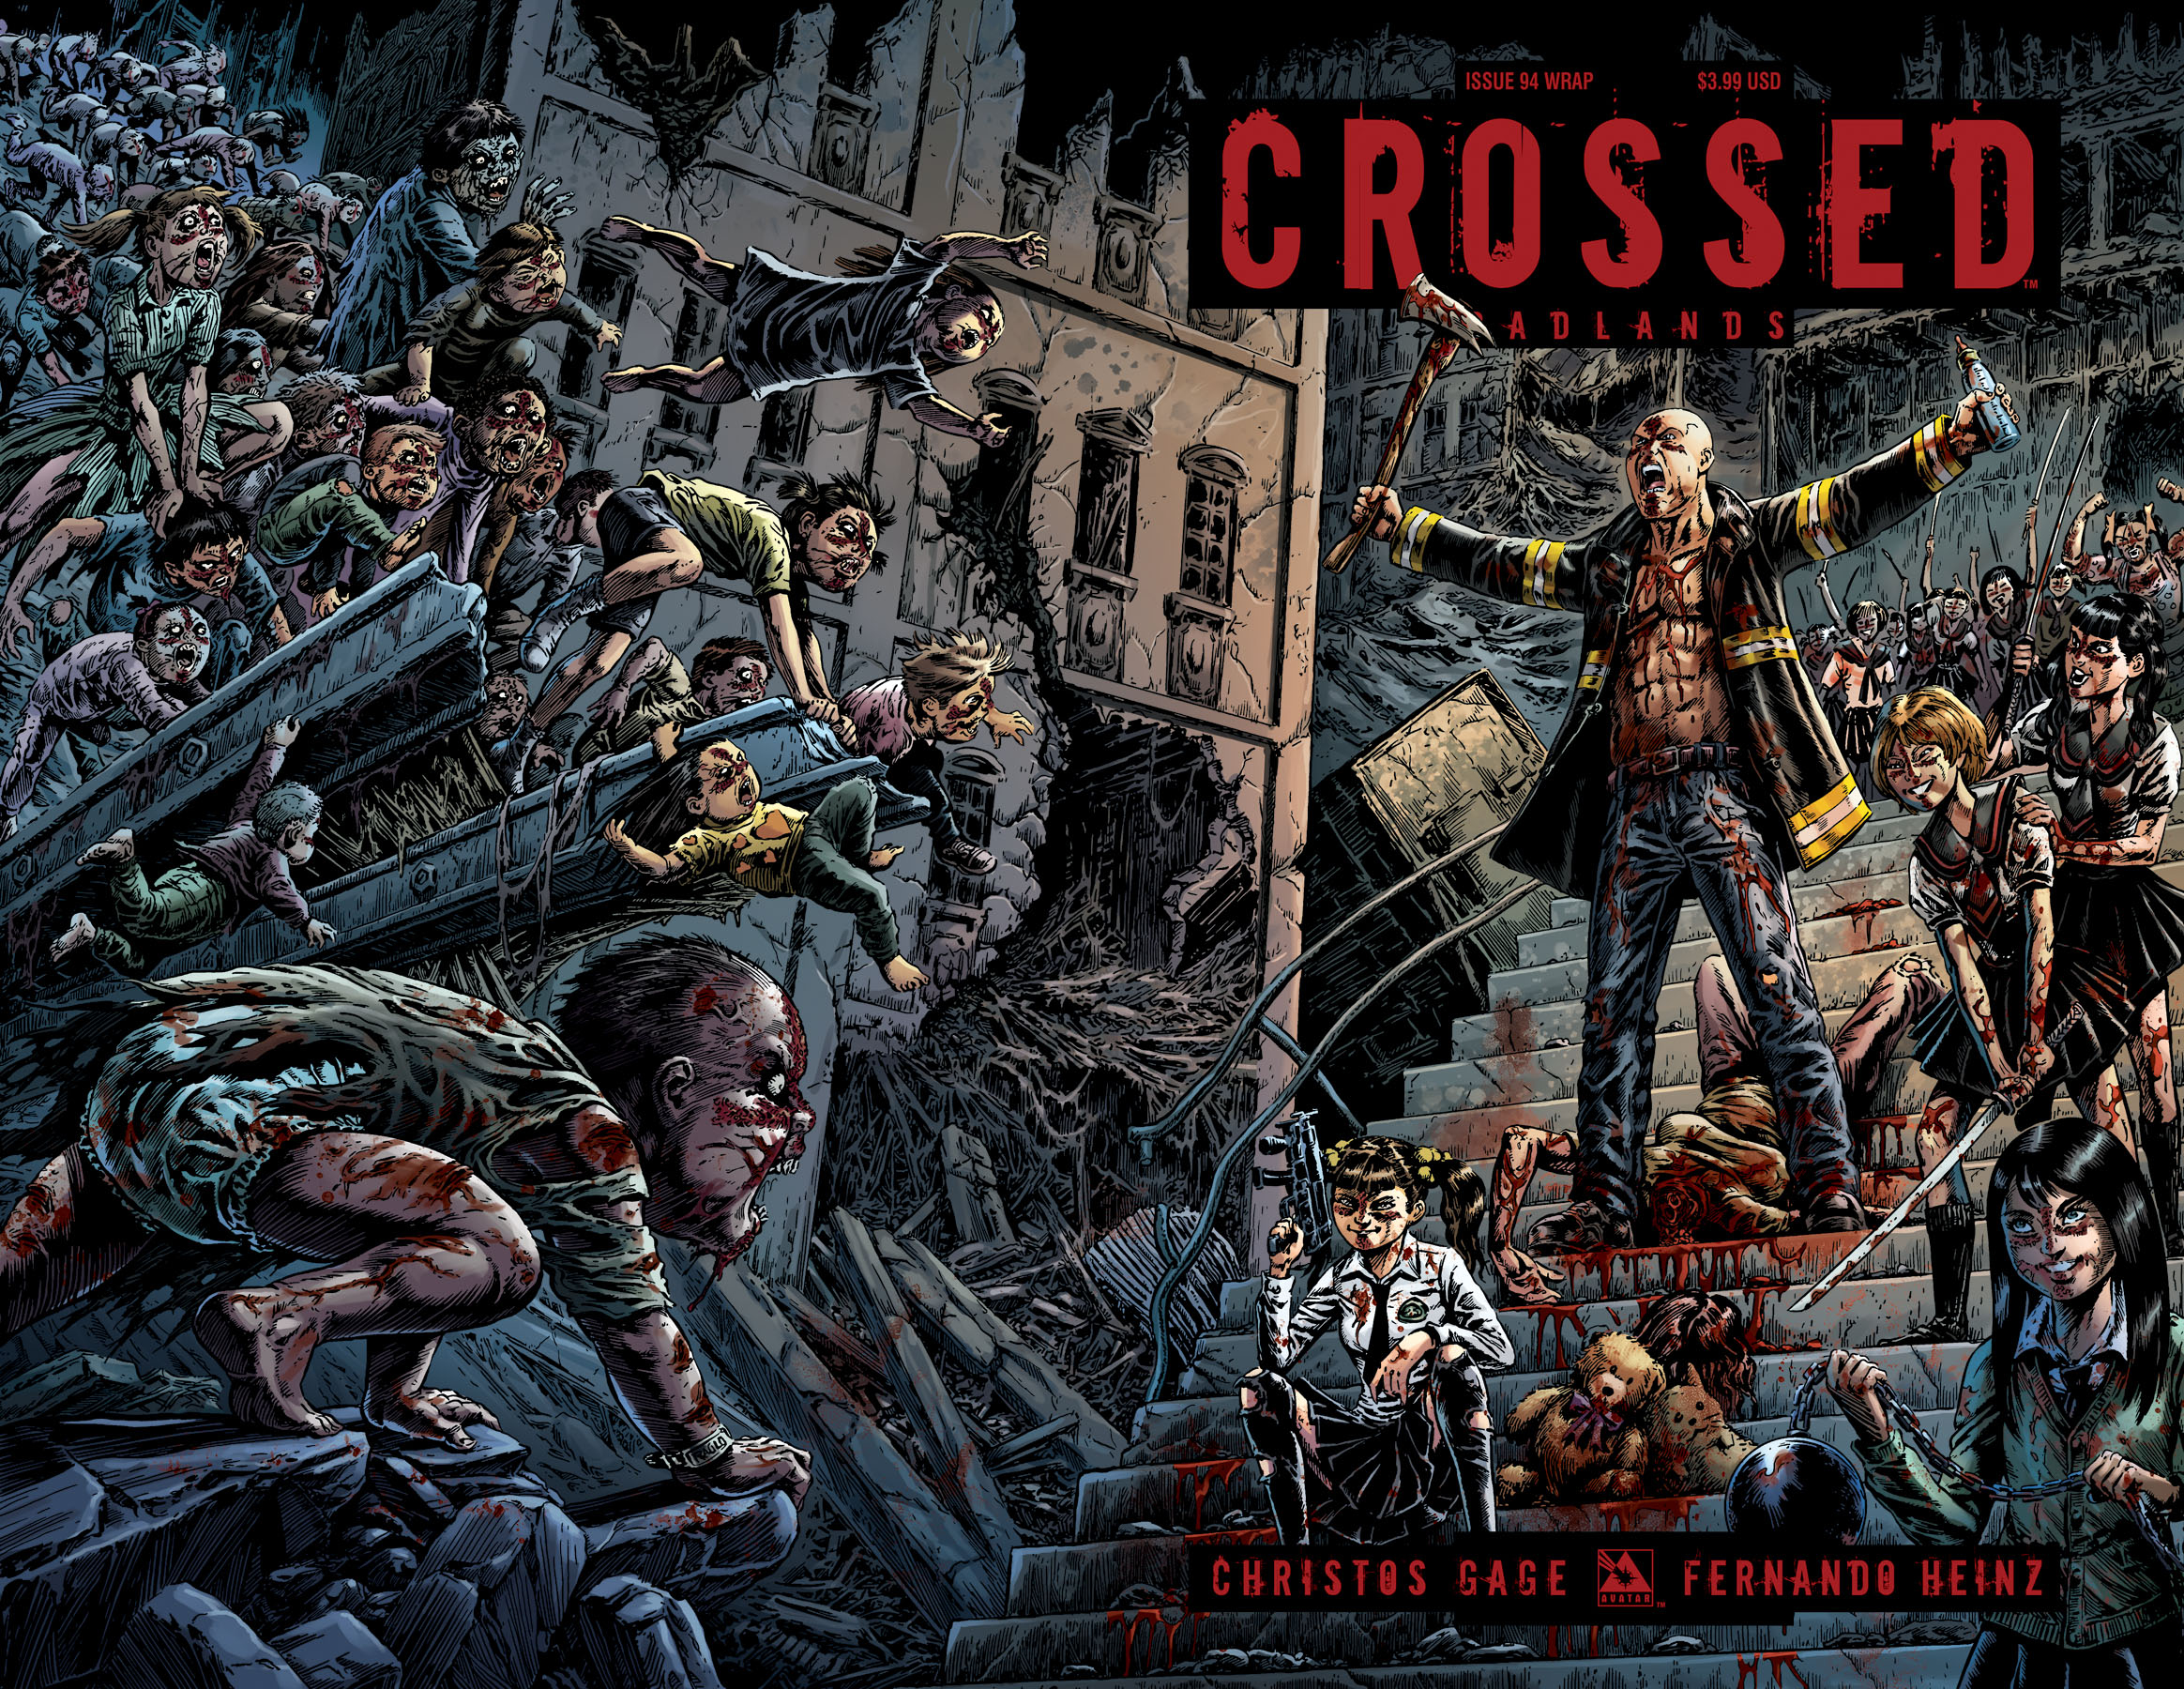 CROSSED BADLANDS #94 WRAP CVR (MR)